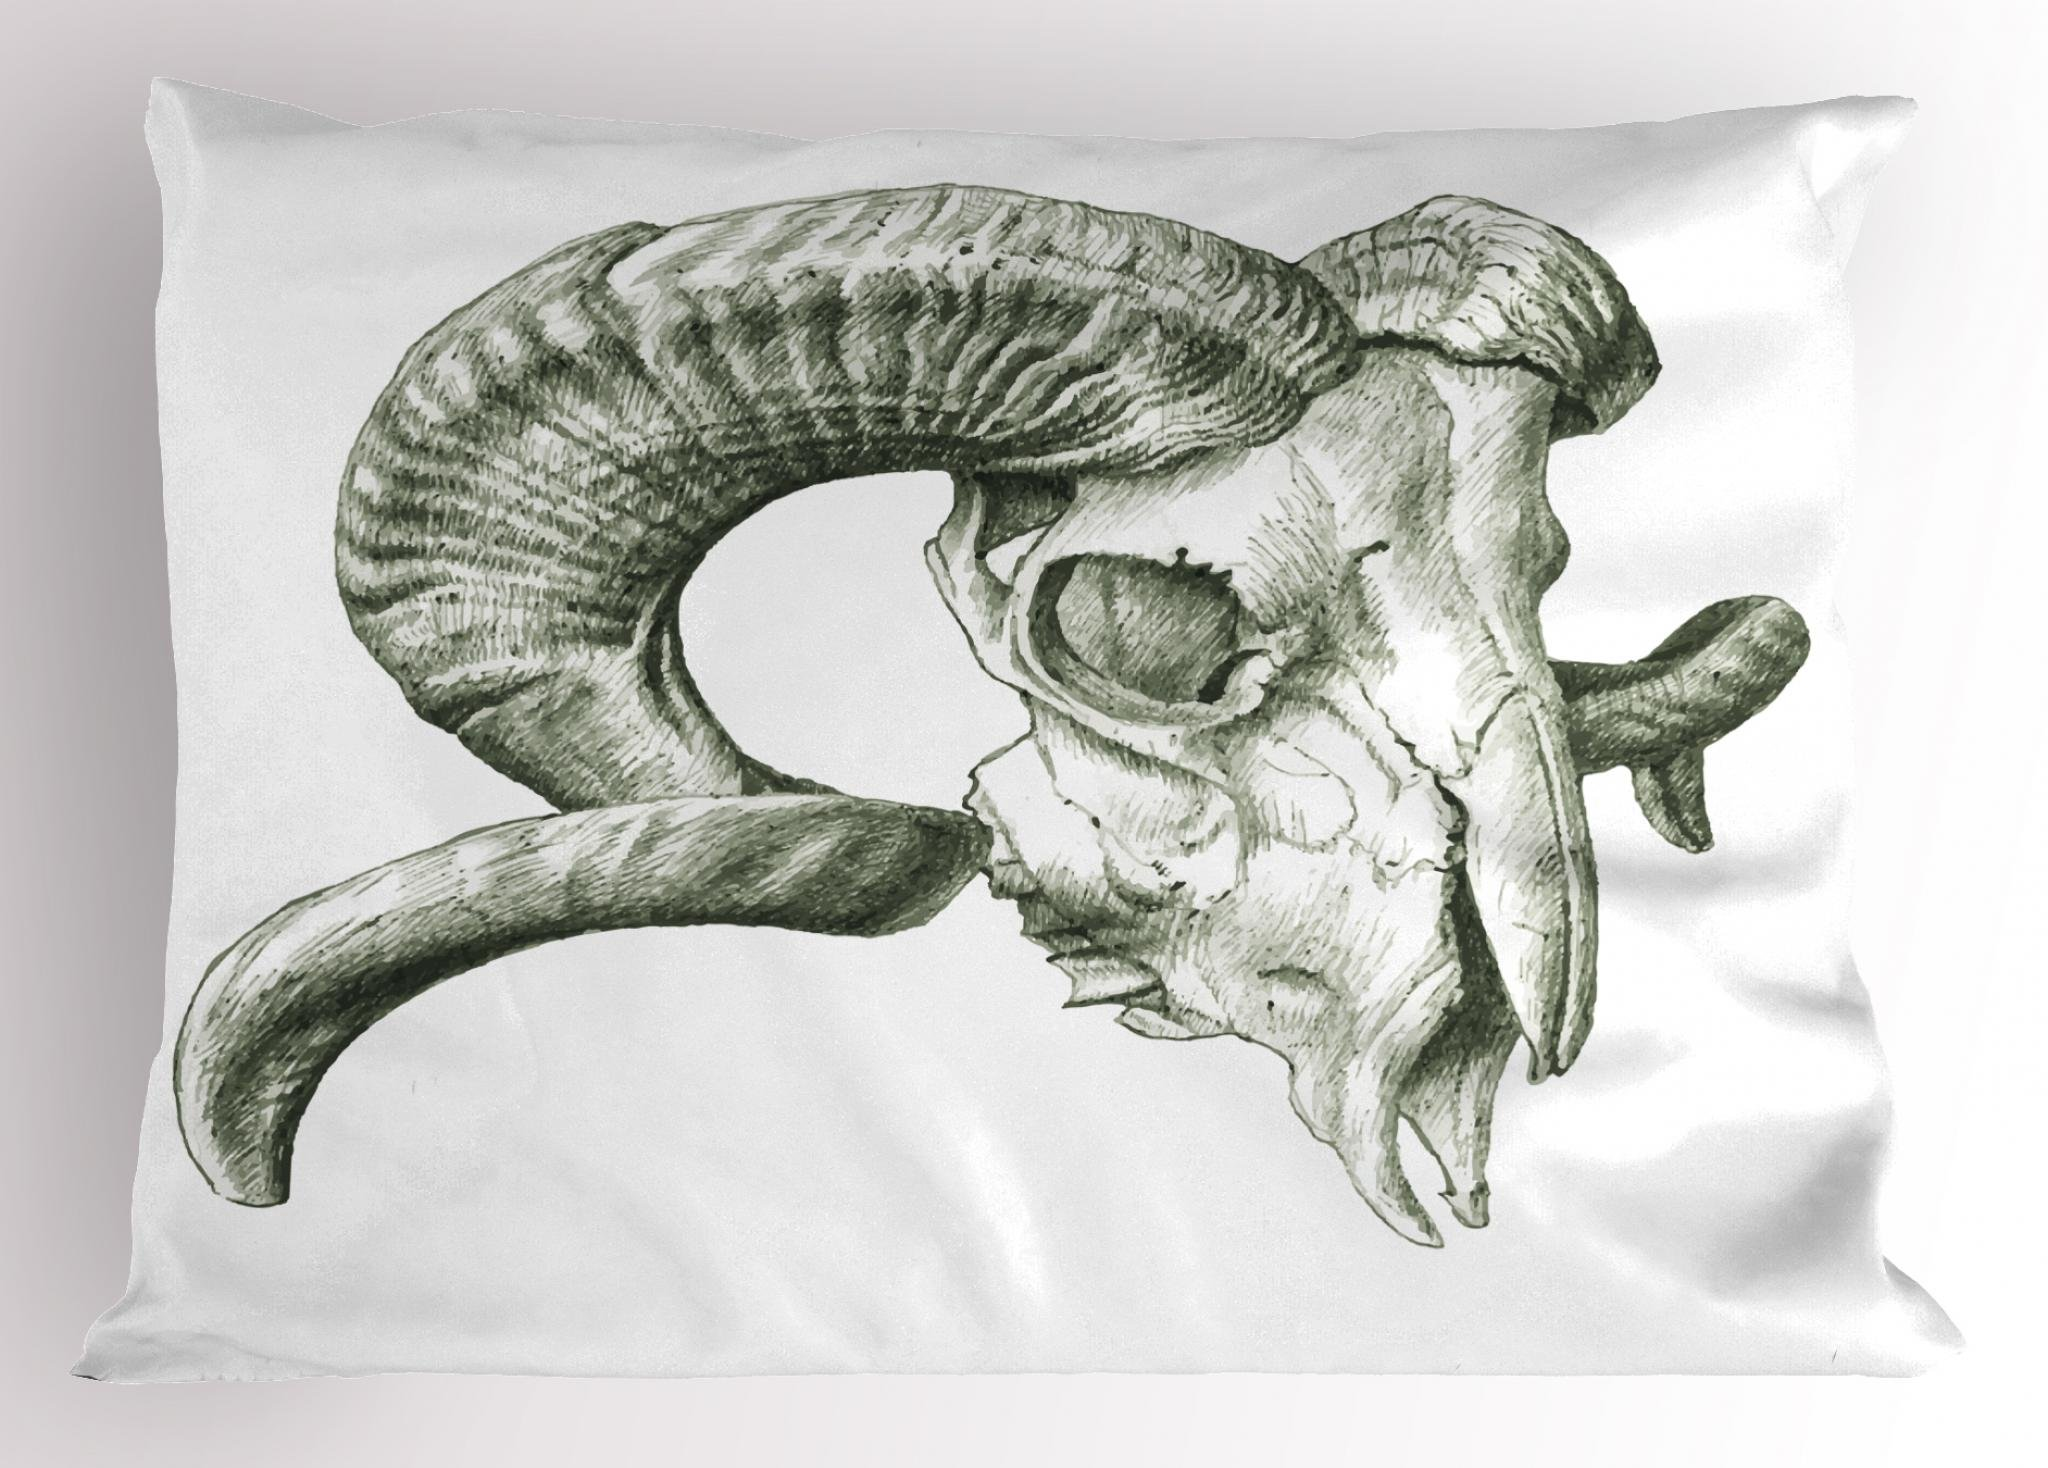 Lunarable Skull Pillow Sham, Scary Goat Animal Skull Illustration in Dark Colors Dead Horns Wild Nature, Decorative Standard Size Printed Pillowcase, 26 X 20 inches, Pale Sage Green White